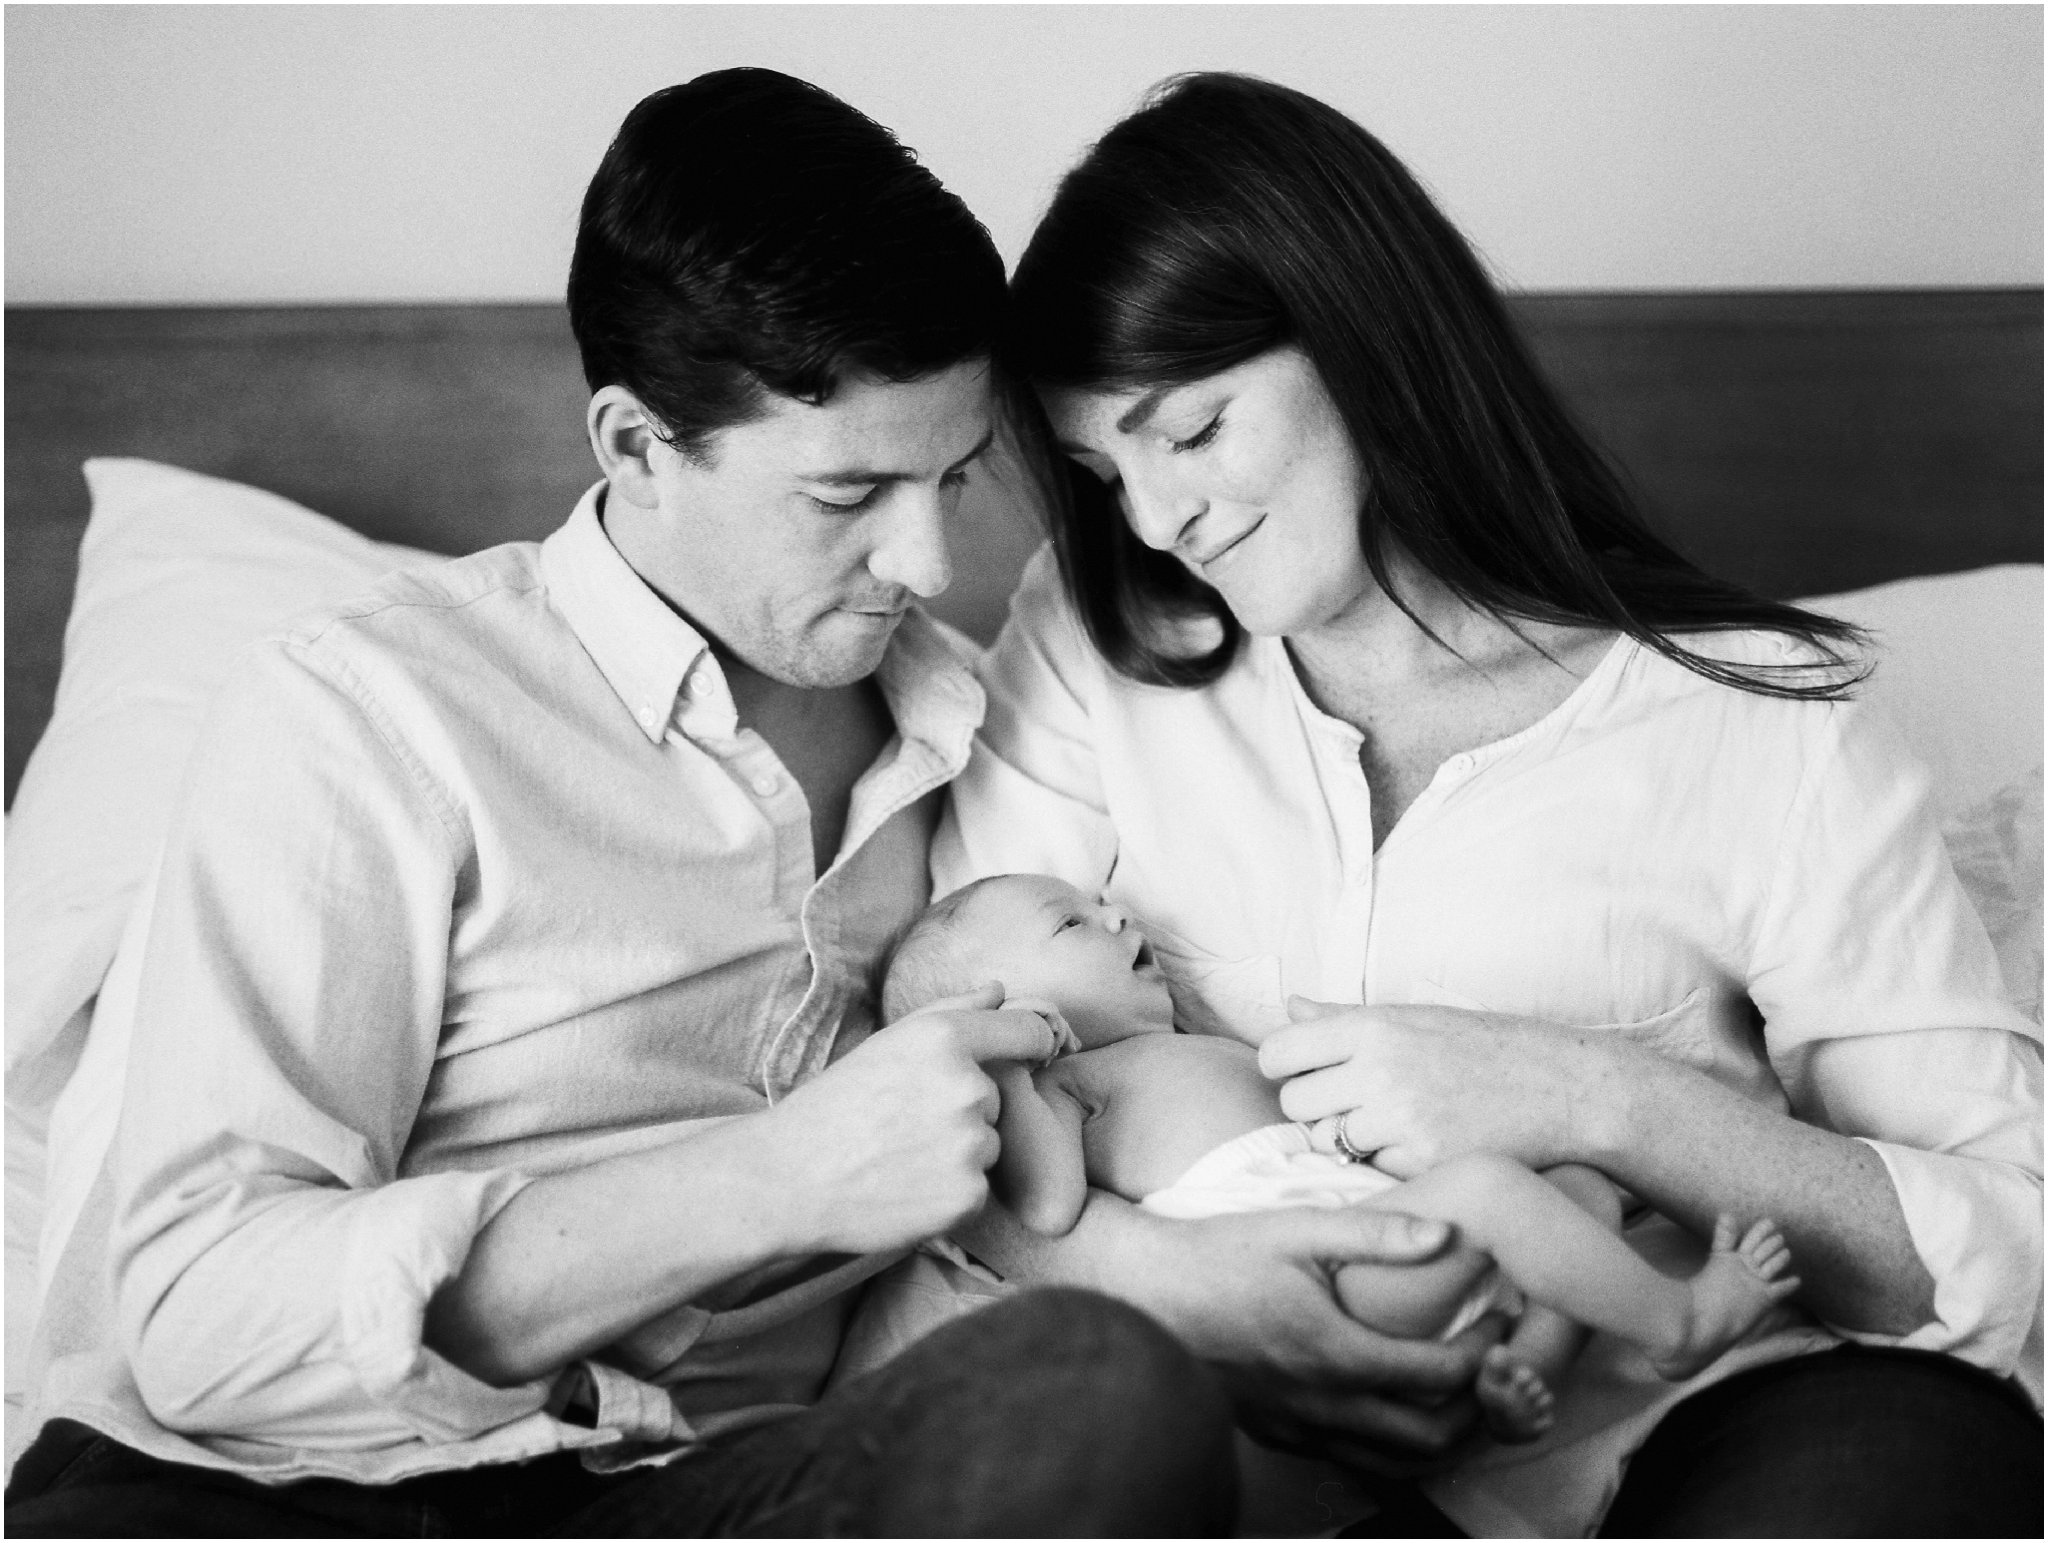 charlottesville in-home newborn session on film by charlottesville newborn & family photographer, amy nicole photography_0011